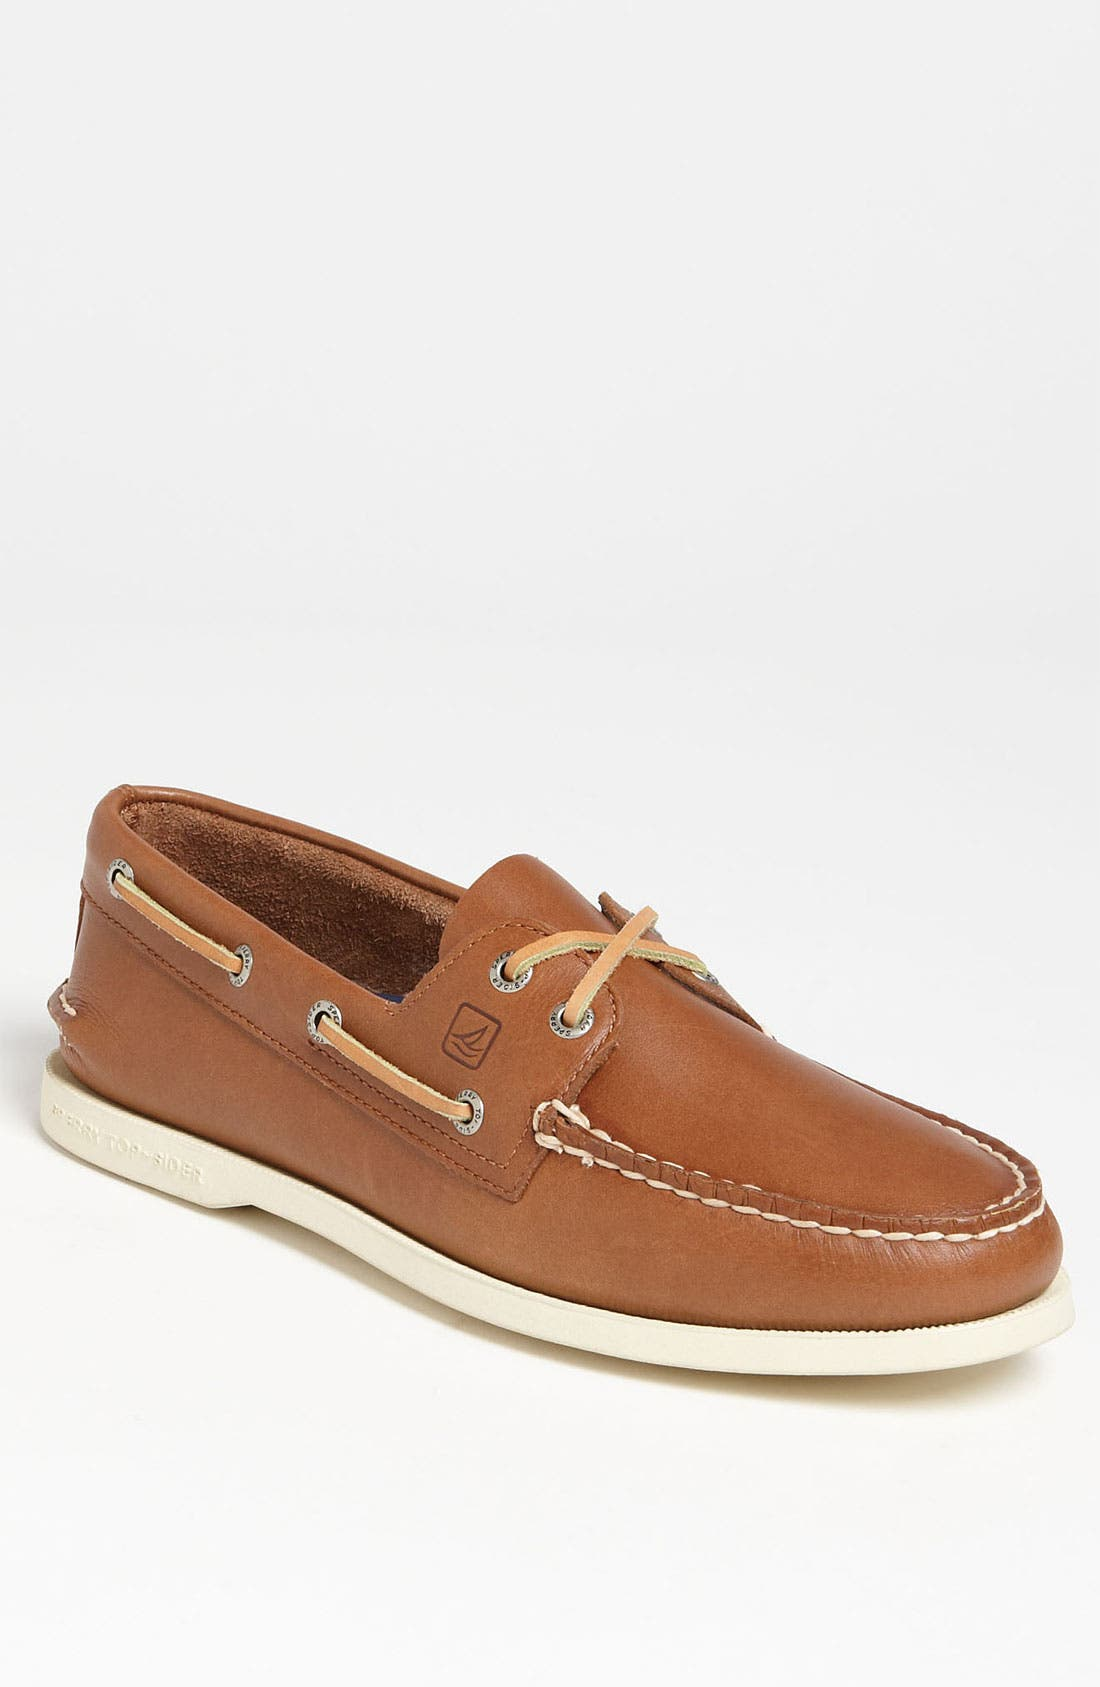 Alternate Image 1 Selected - Sperry 'Authentic Original' Leather Boat Shoe